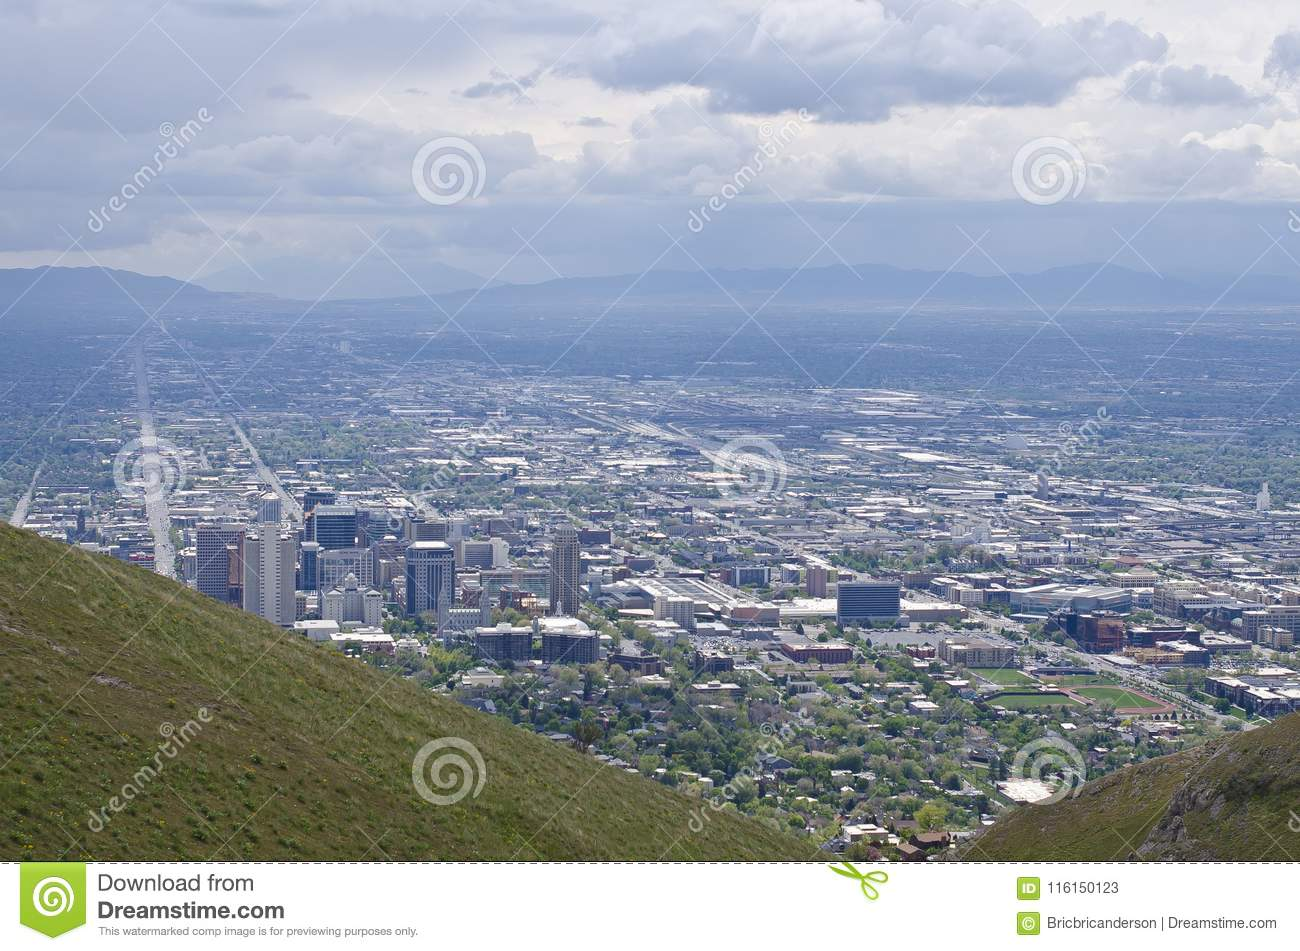 A view of the roads and buildings far above the salt lake city valley from  the mountain side on a nice summer day. - Downtown Salt Lake City Hillside Landscape Stock Image - Image Of